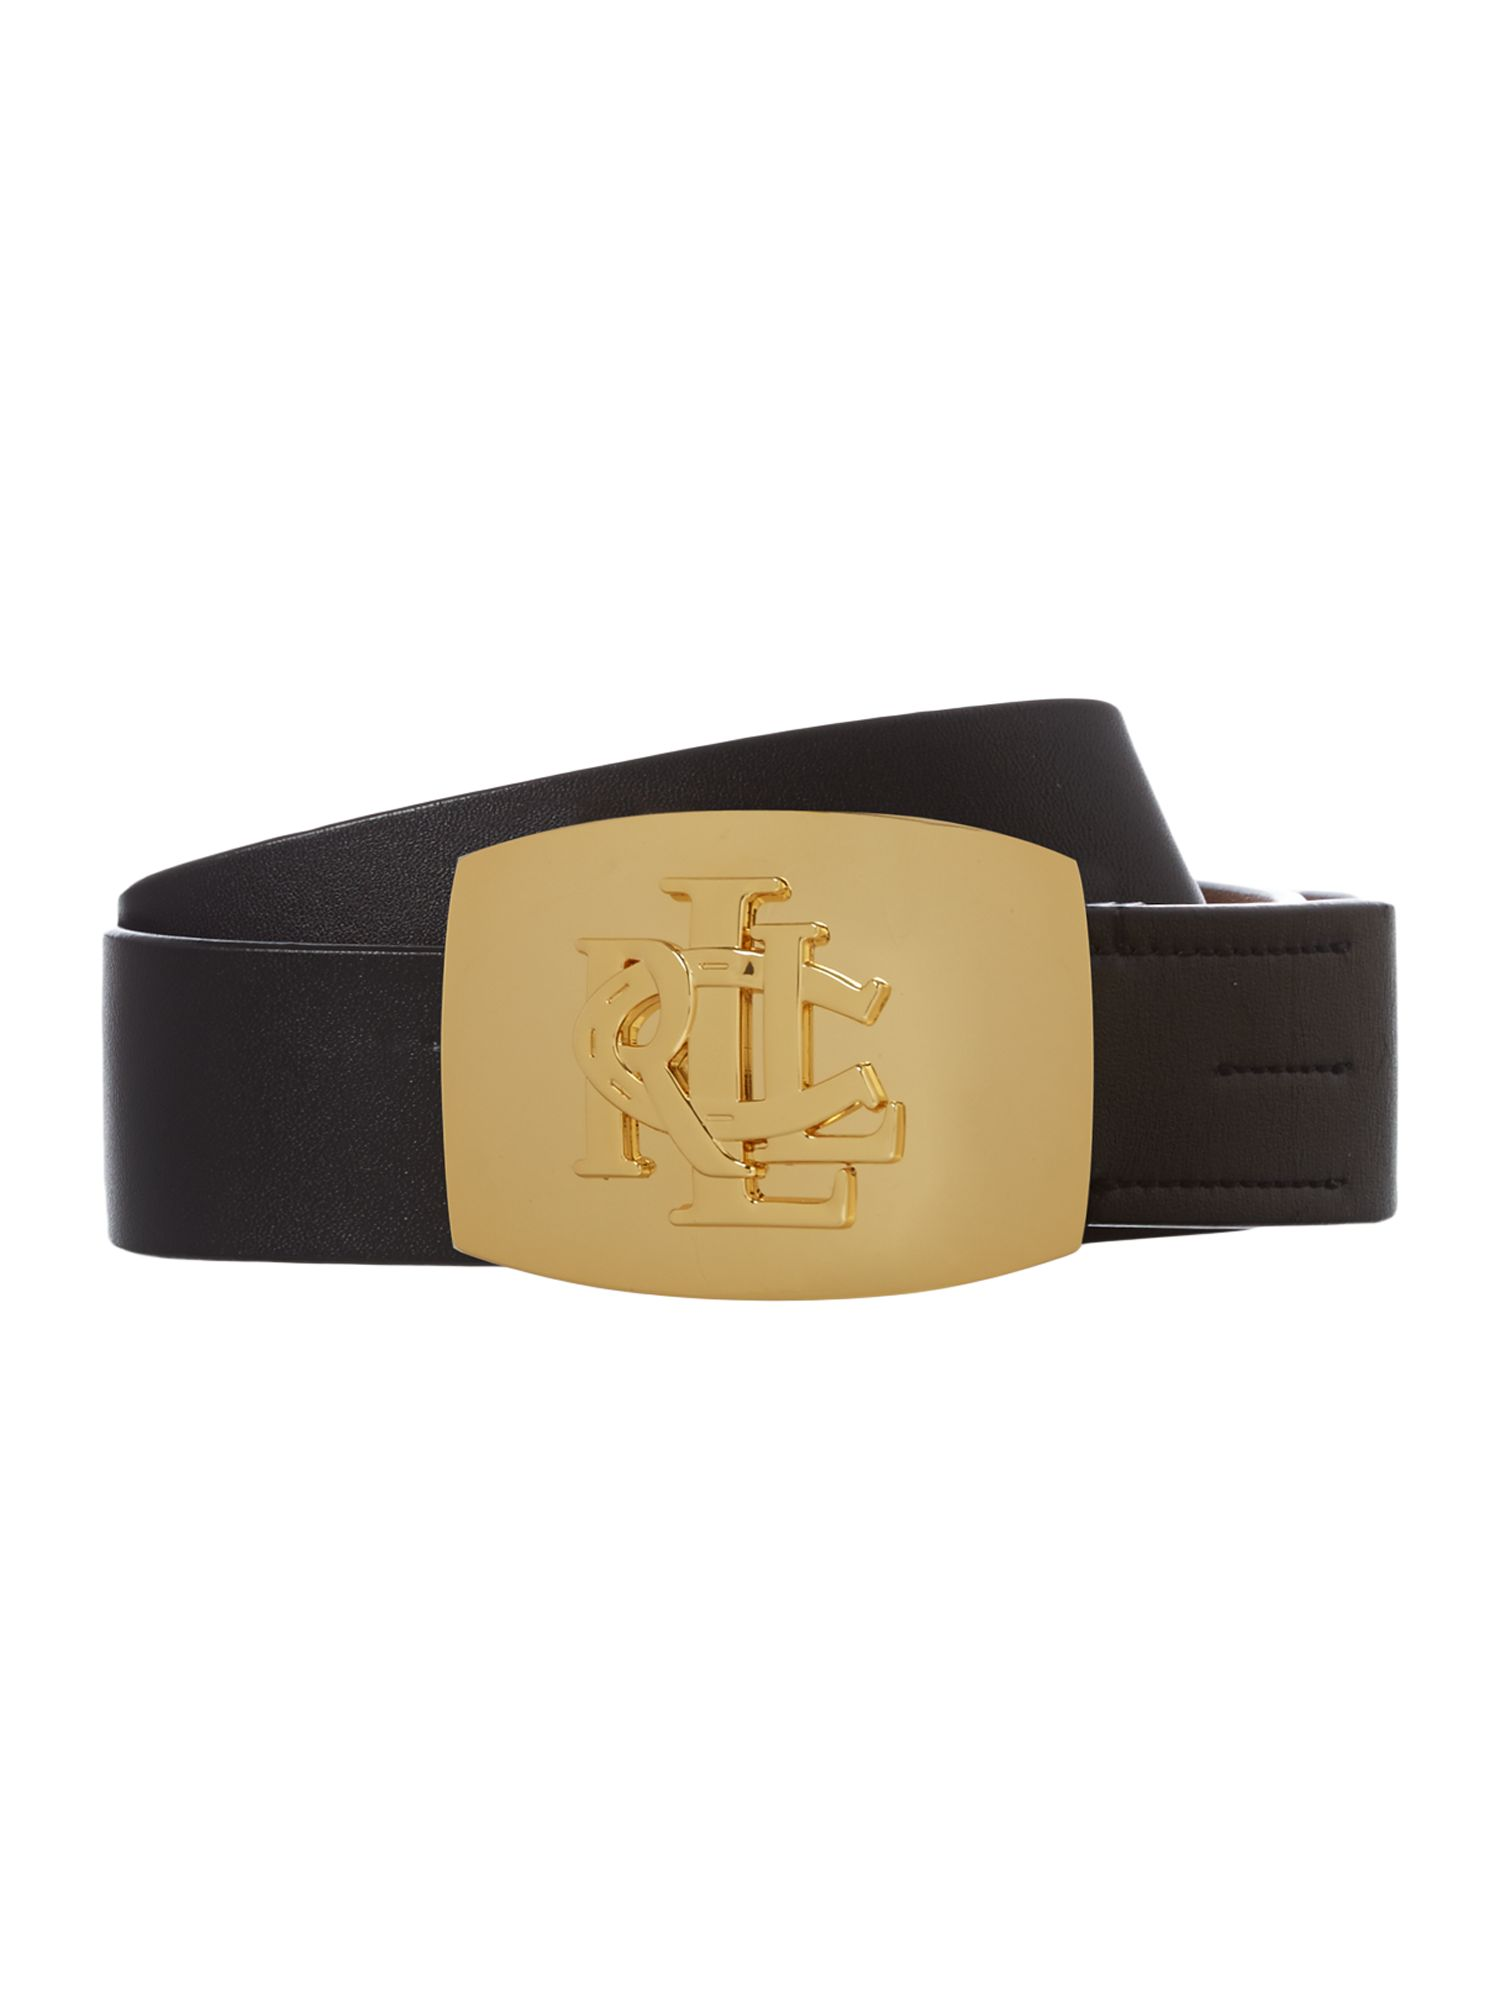 Leather belt with debossed logo